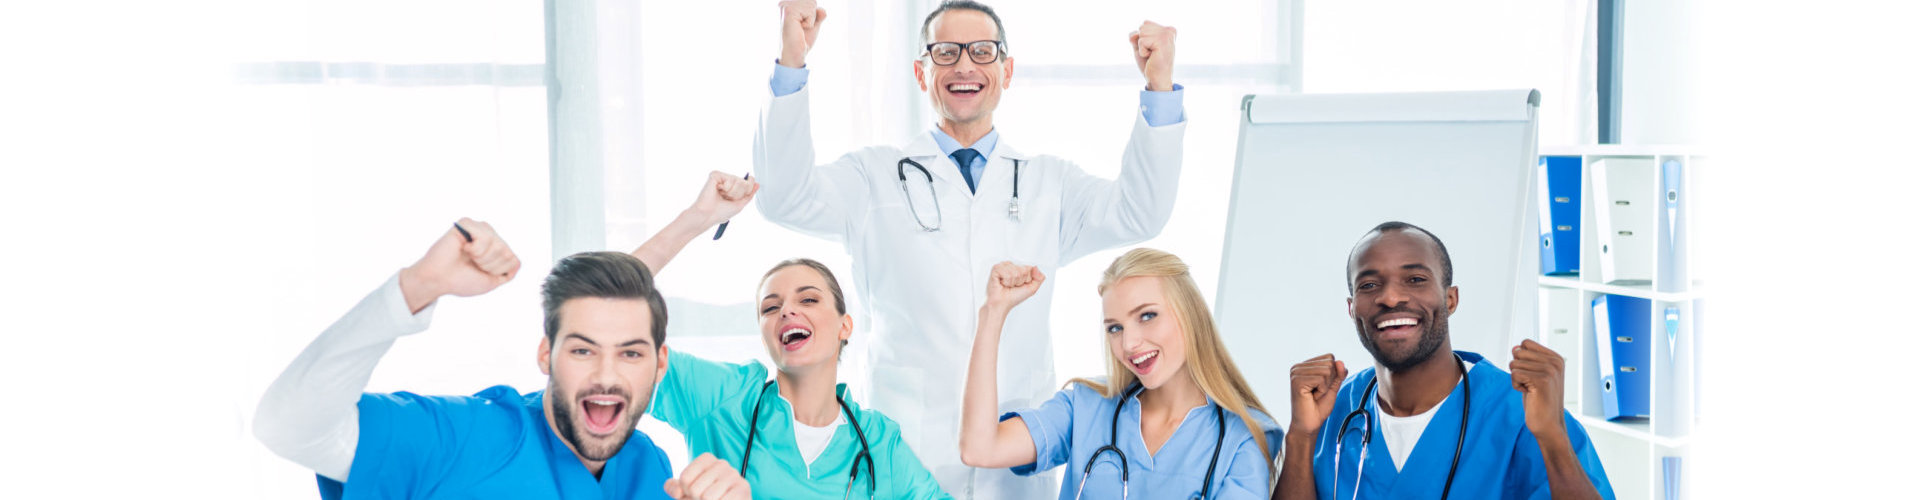 a group of medical team hands up and smiling